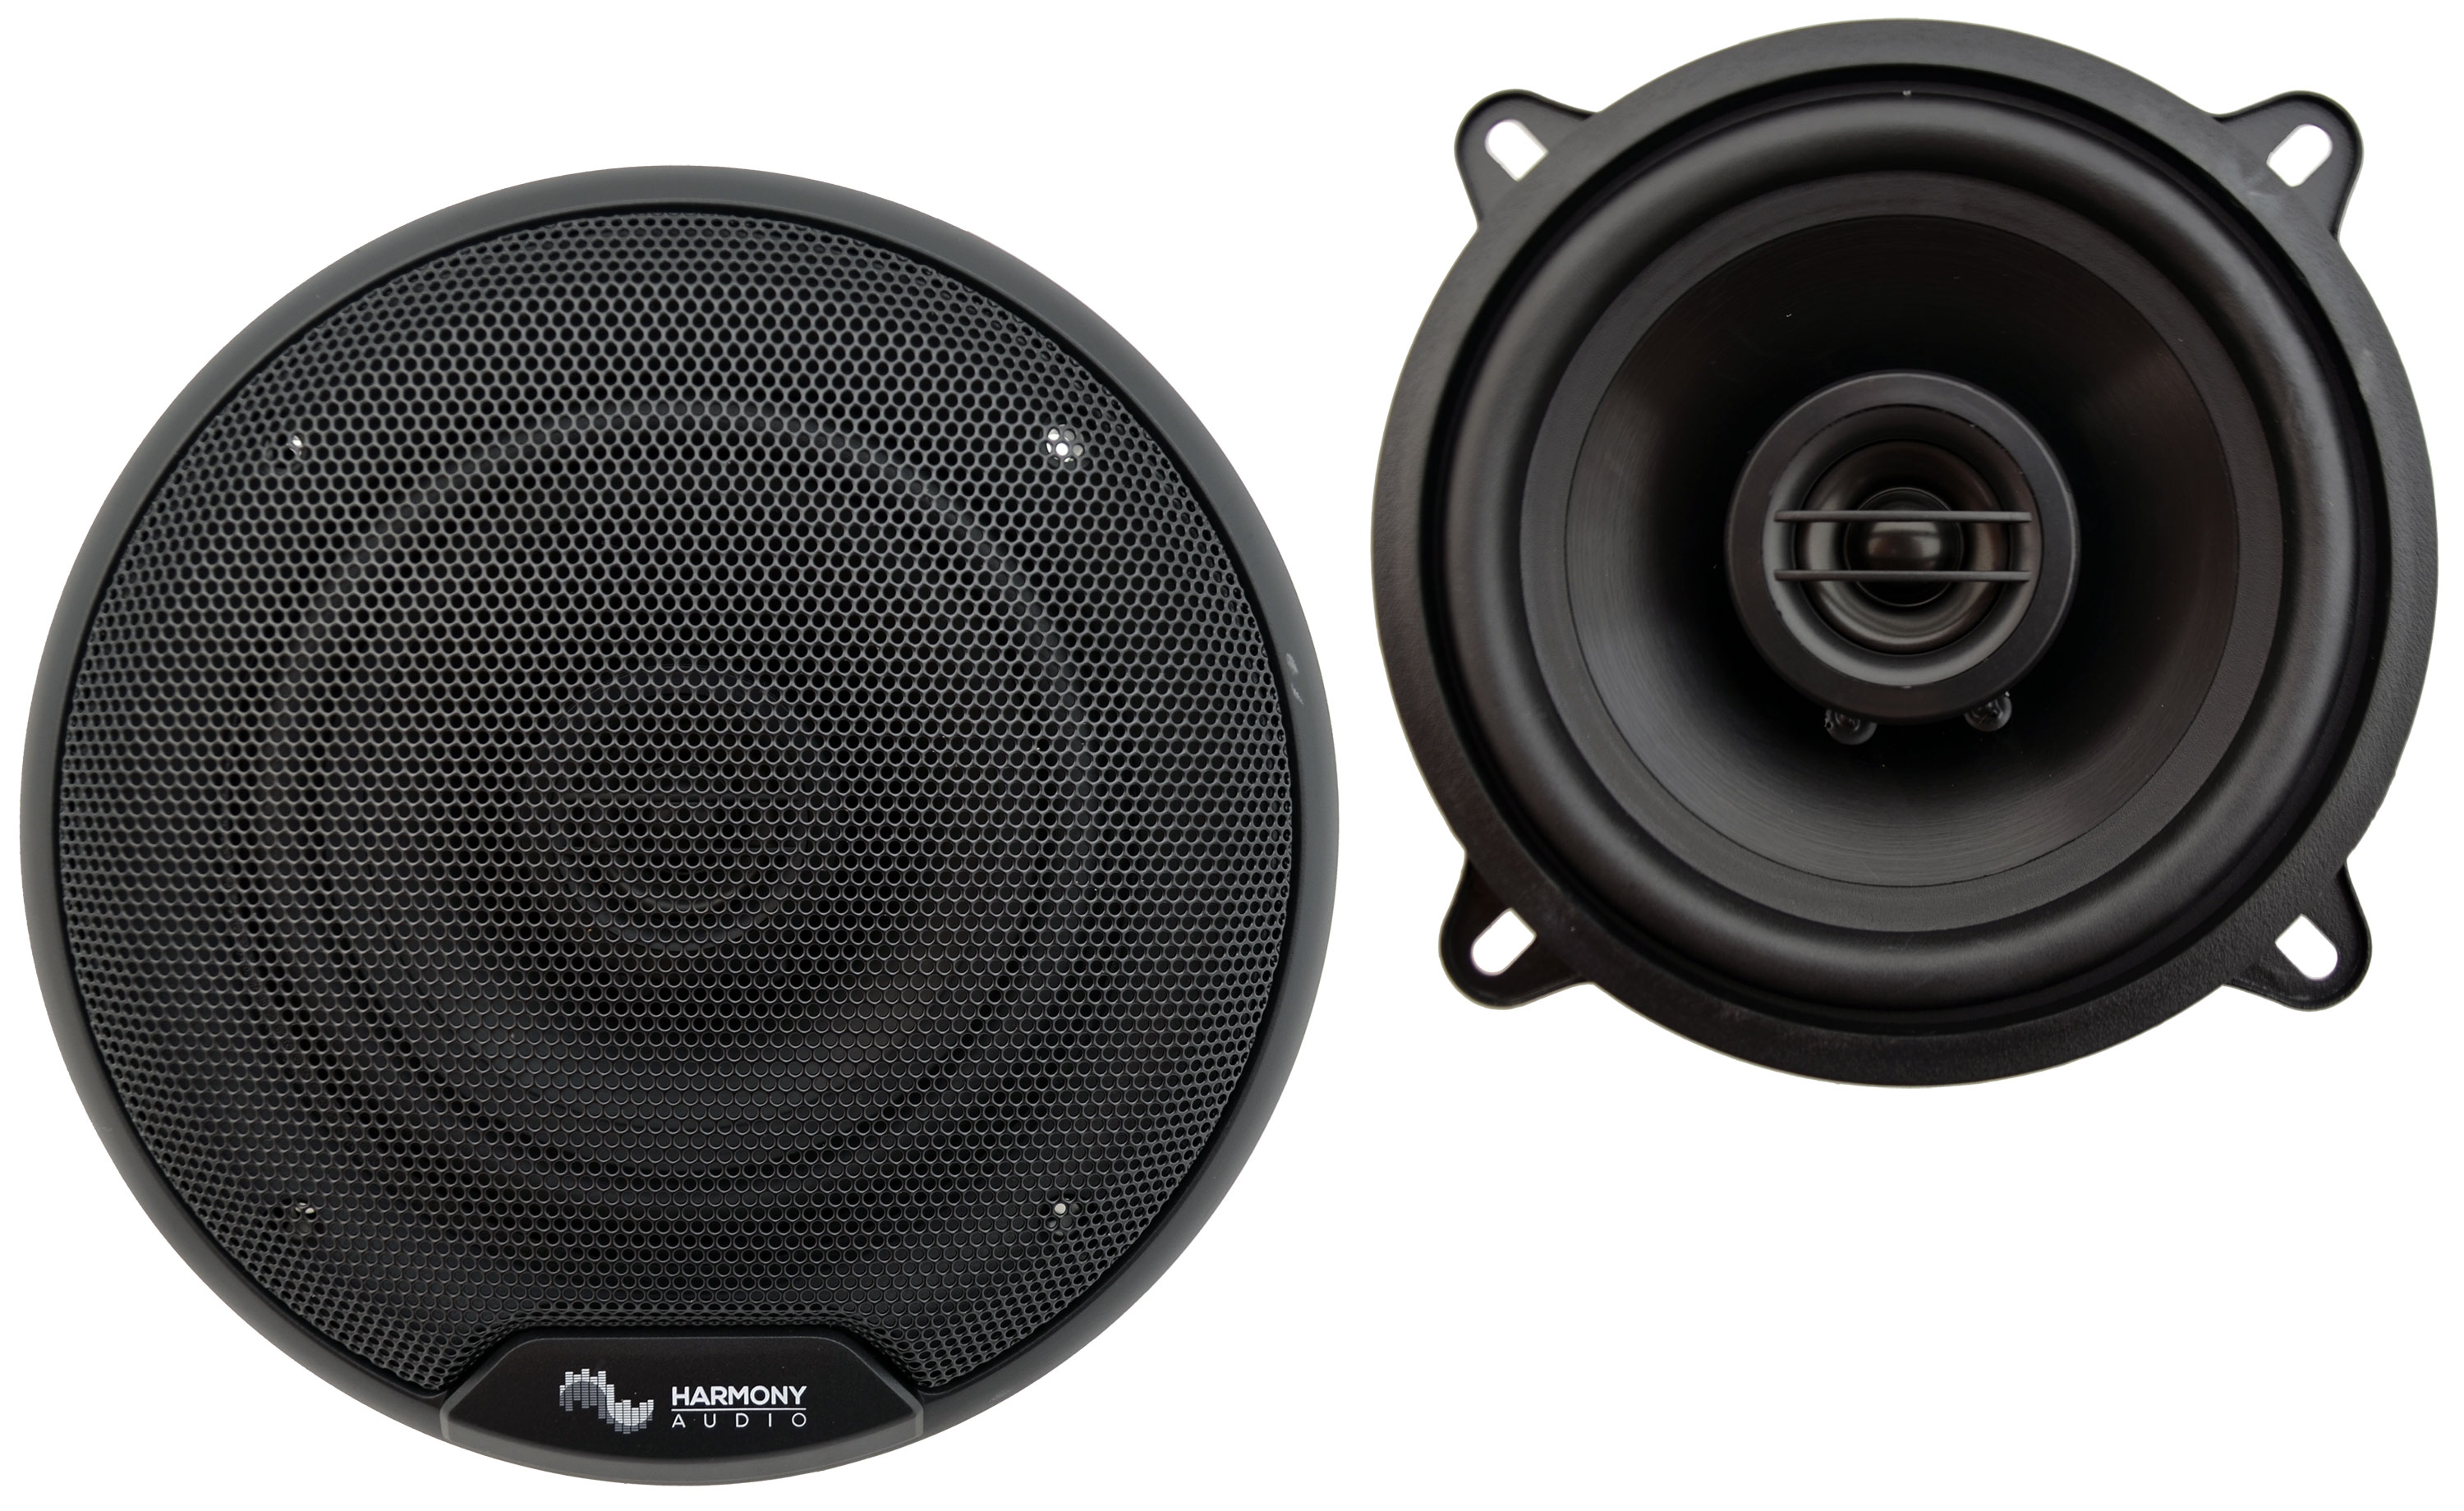 Fits Nissan Maxima 1982-1984 Rear Deck Replacement Harmony HA-R5 Speakers New